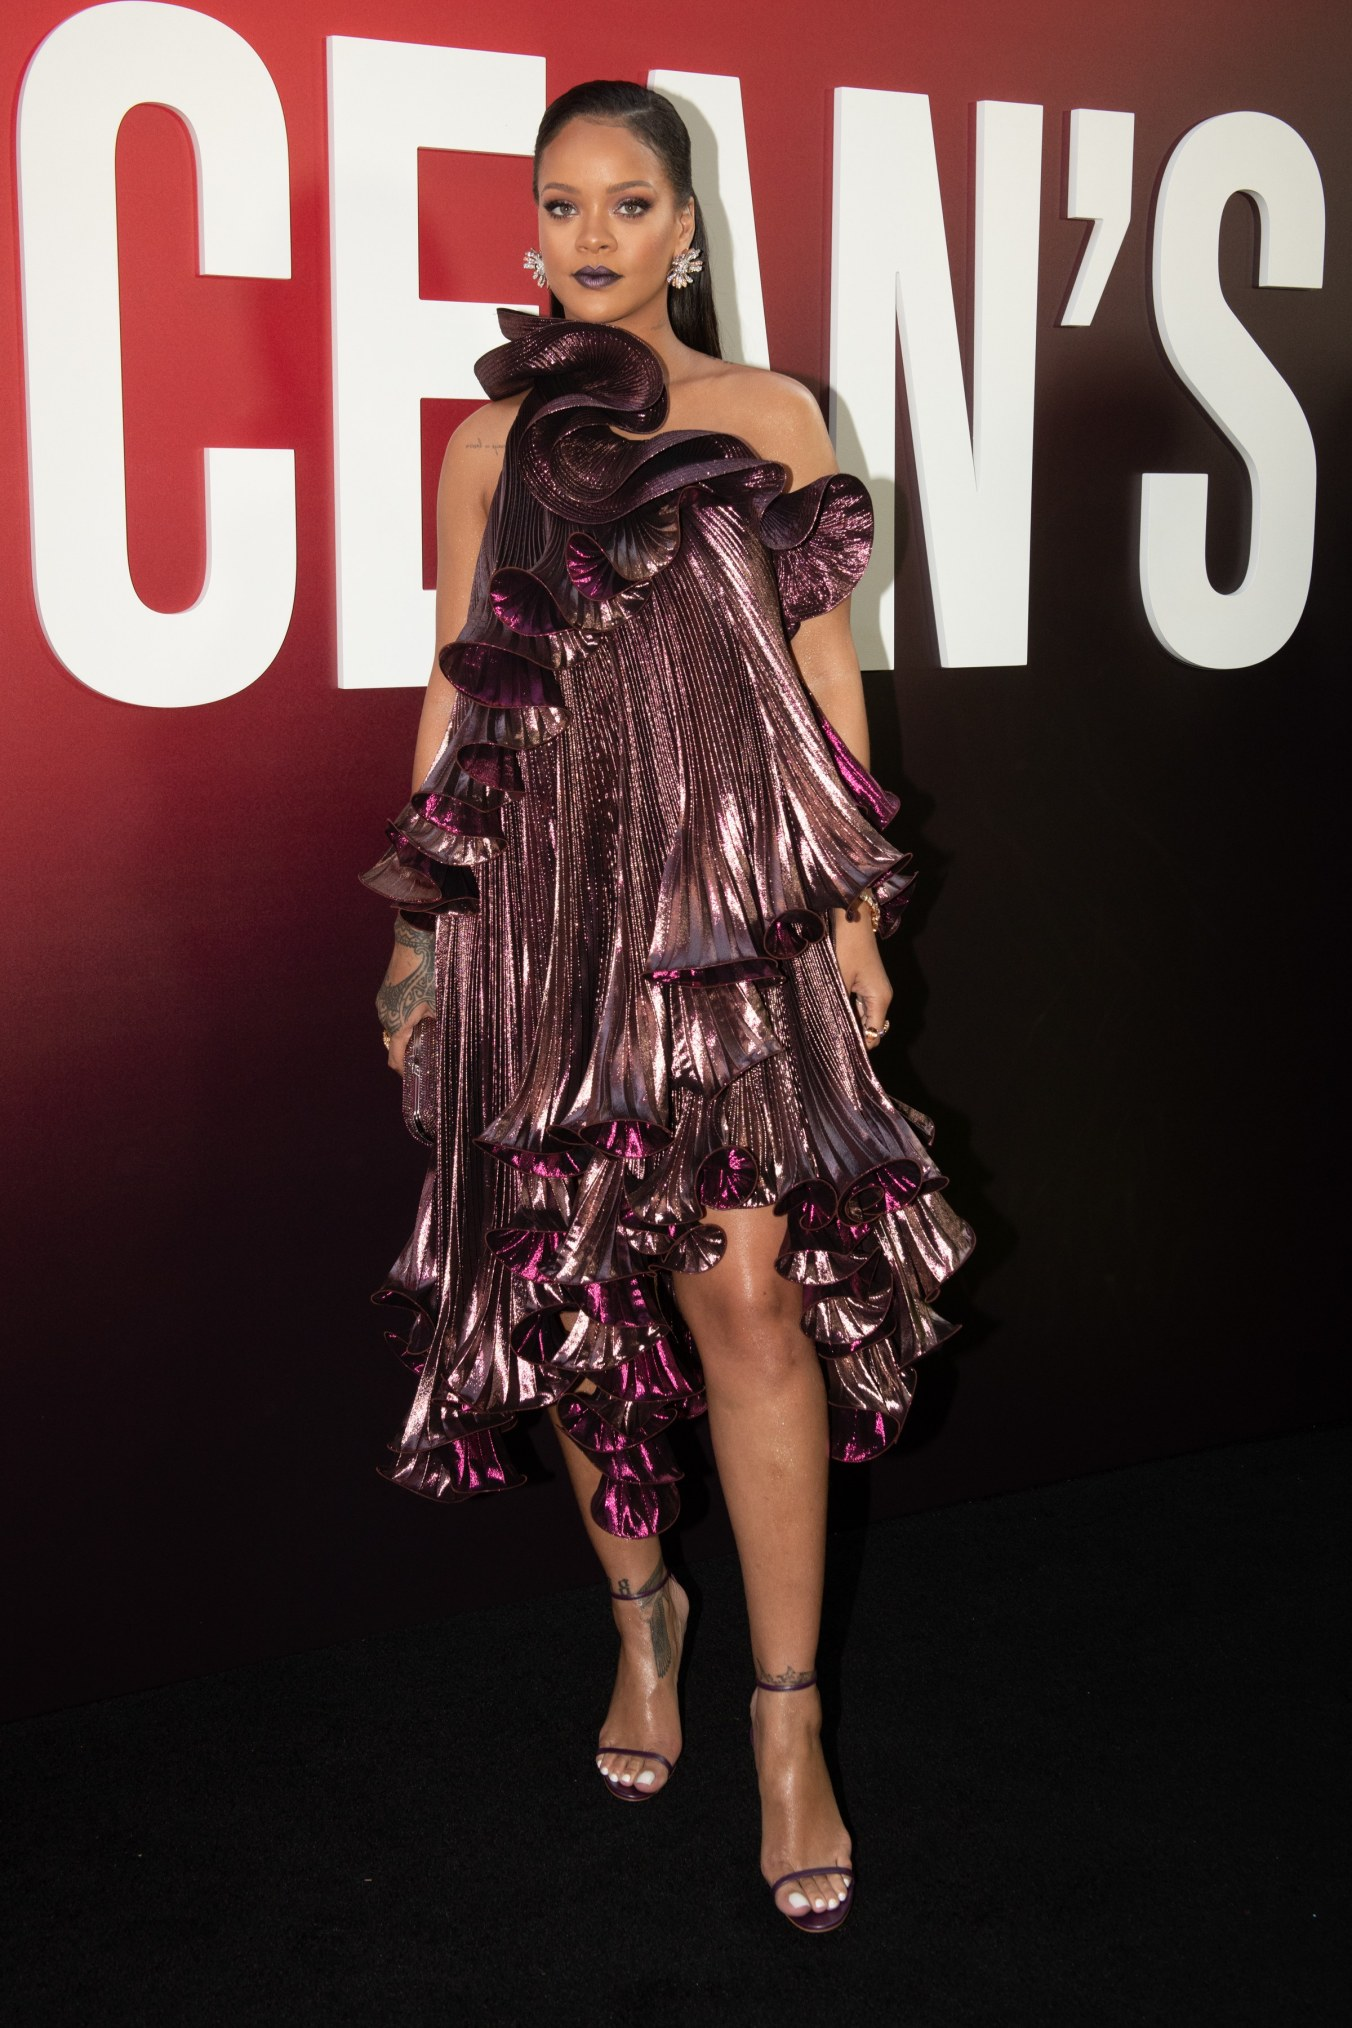 Rihanna at the Ocean's 8 premiere in New York (Photo credit: Getty Images)